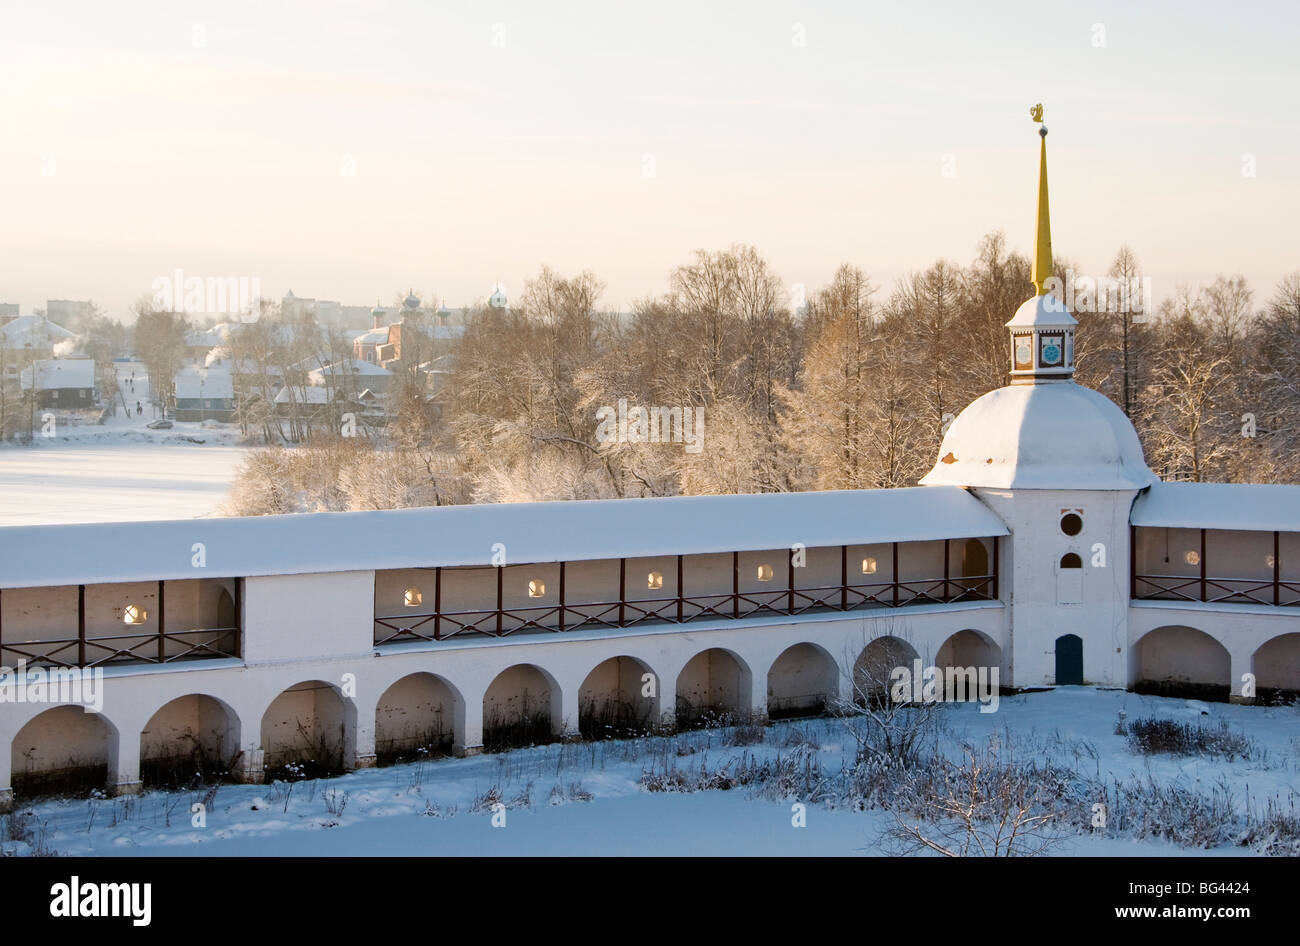 Walls of Bogorodichno-Uspenskij Monastery with town Tikhvin in the background, Leningrad region, Russia - Stock Image